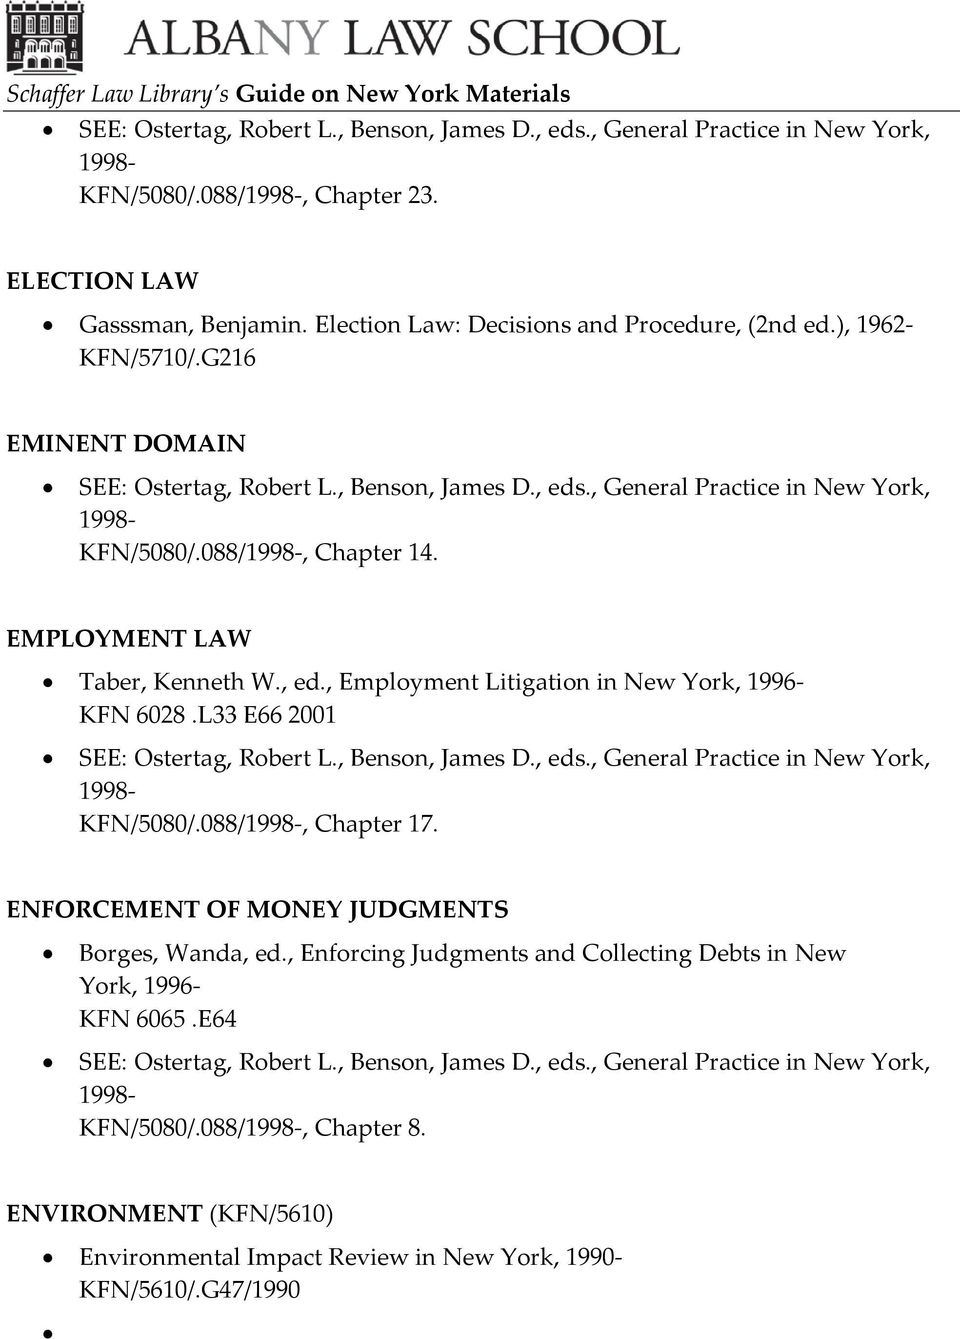 , Employment Litigation in New York, 1996- KFN 6028.L33 E66 2001 KFN/5080/.088/, Chapter 17.